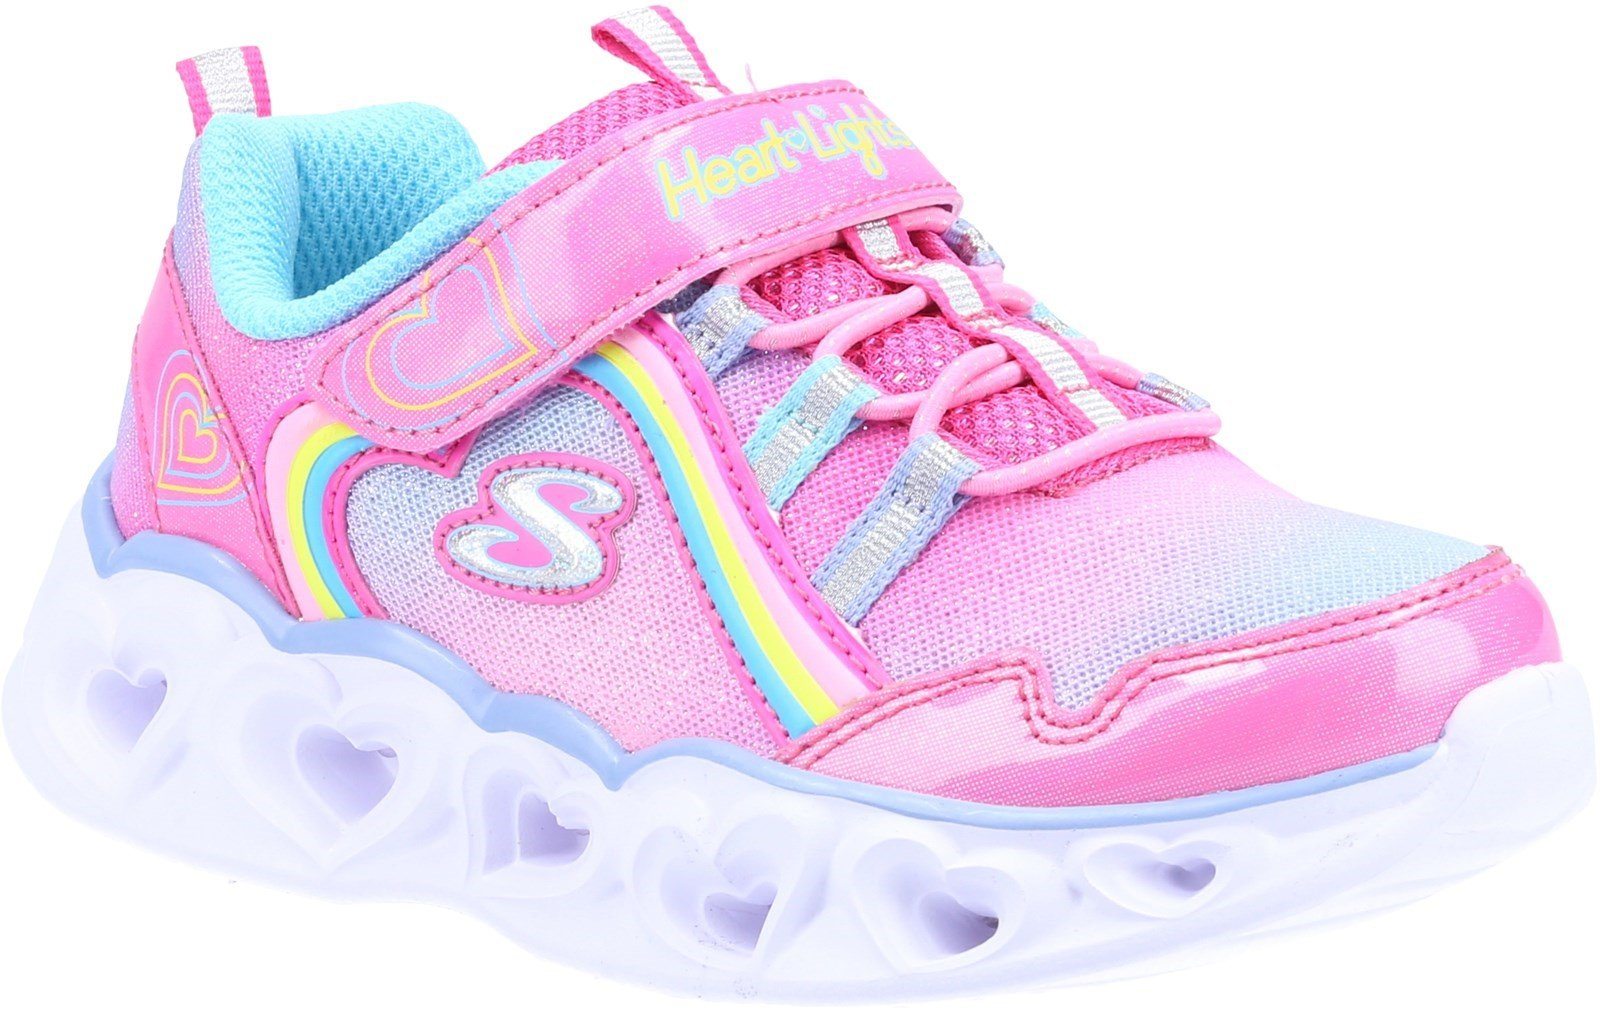 Skechers Kid's Heart Lights Rainbow Lux Trainer Various Colours 32081 - Pink/Mulitcoloured 4